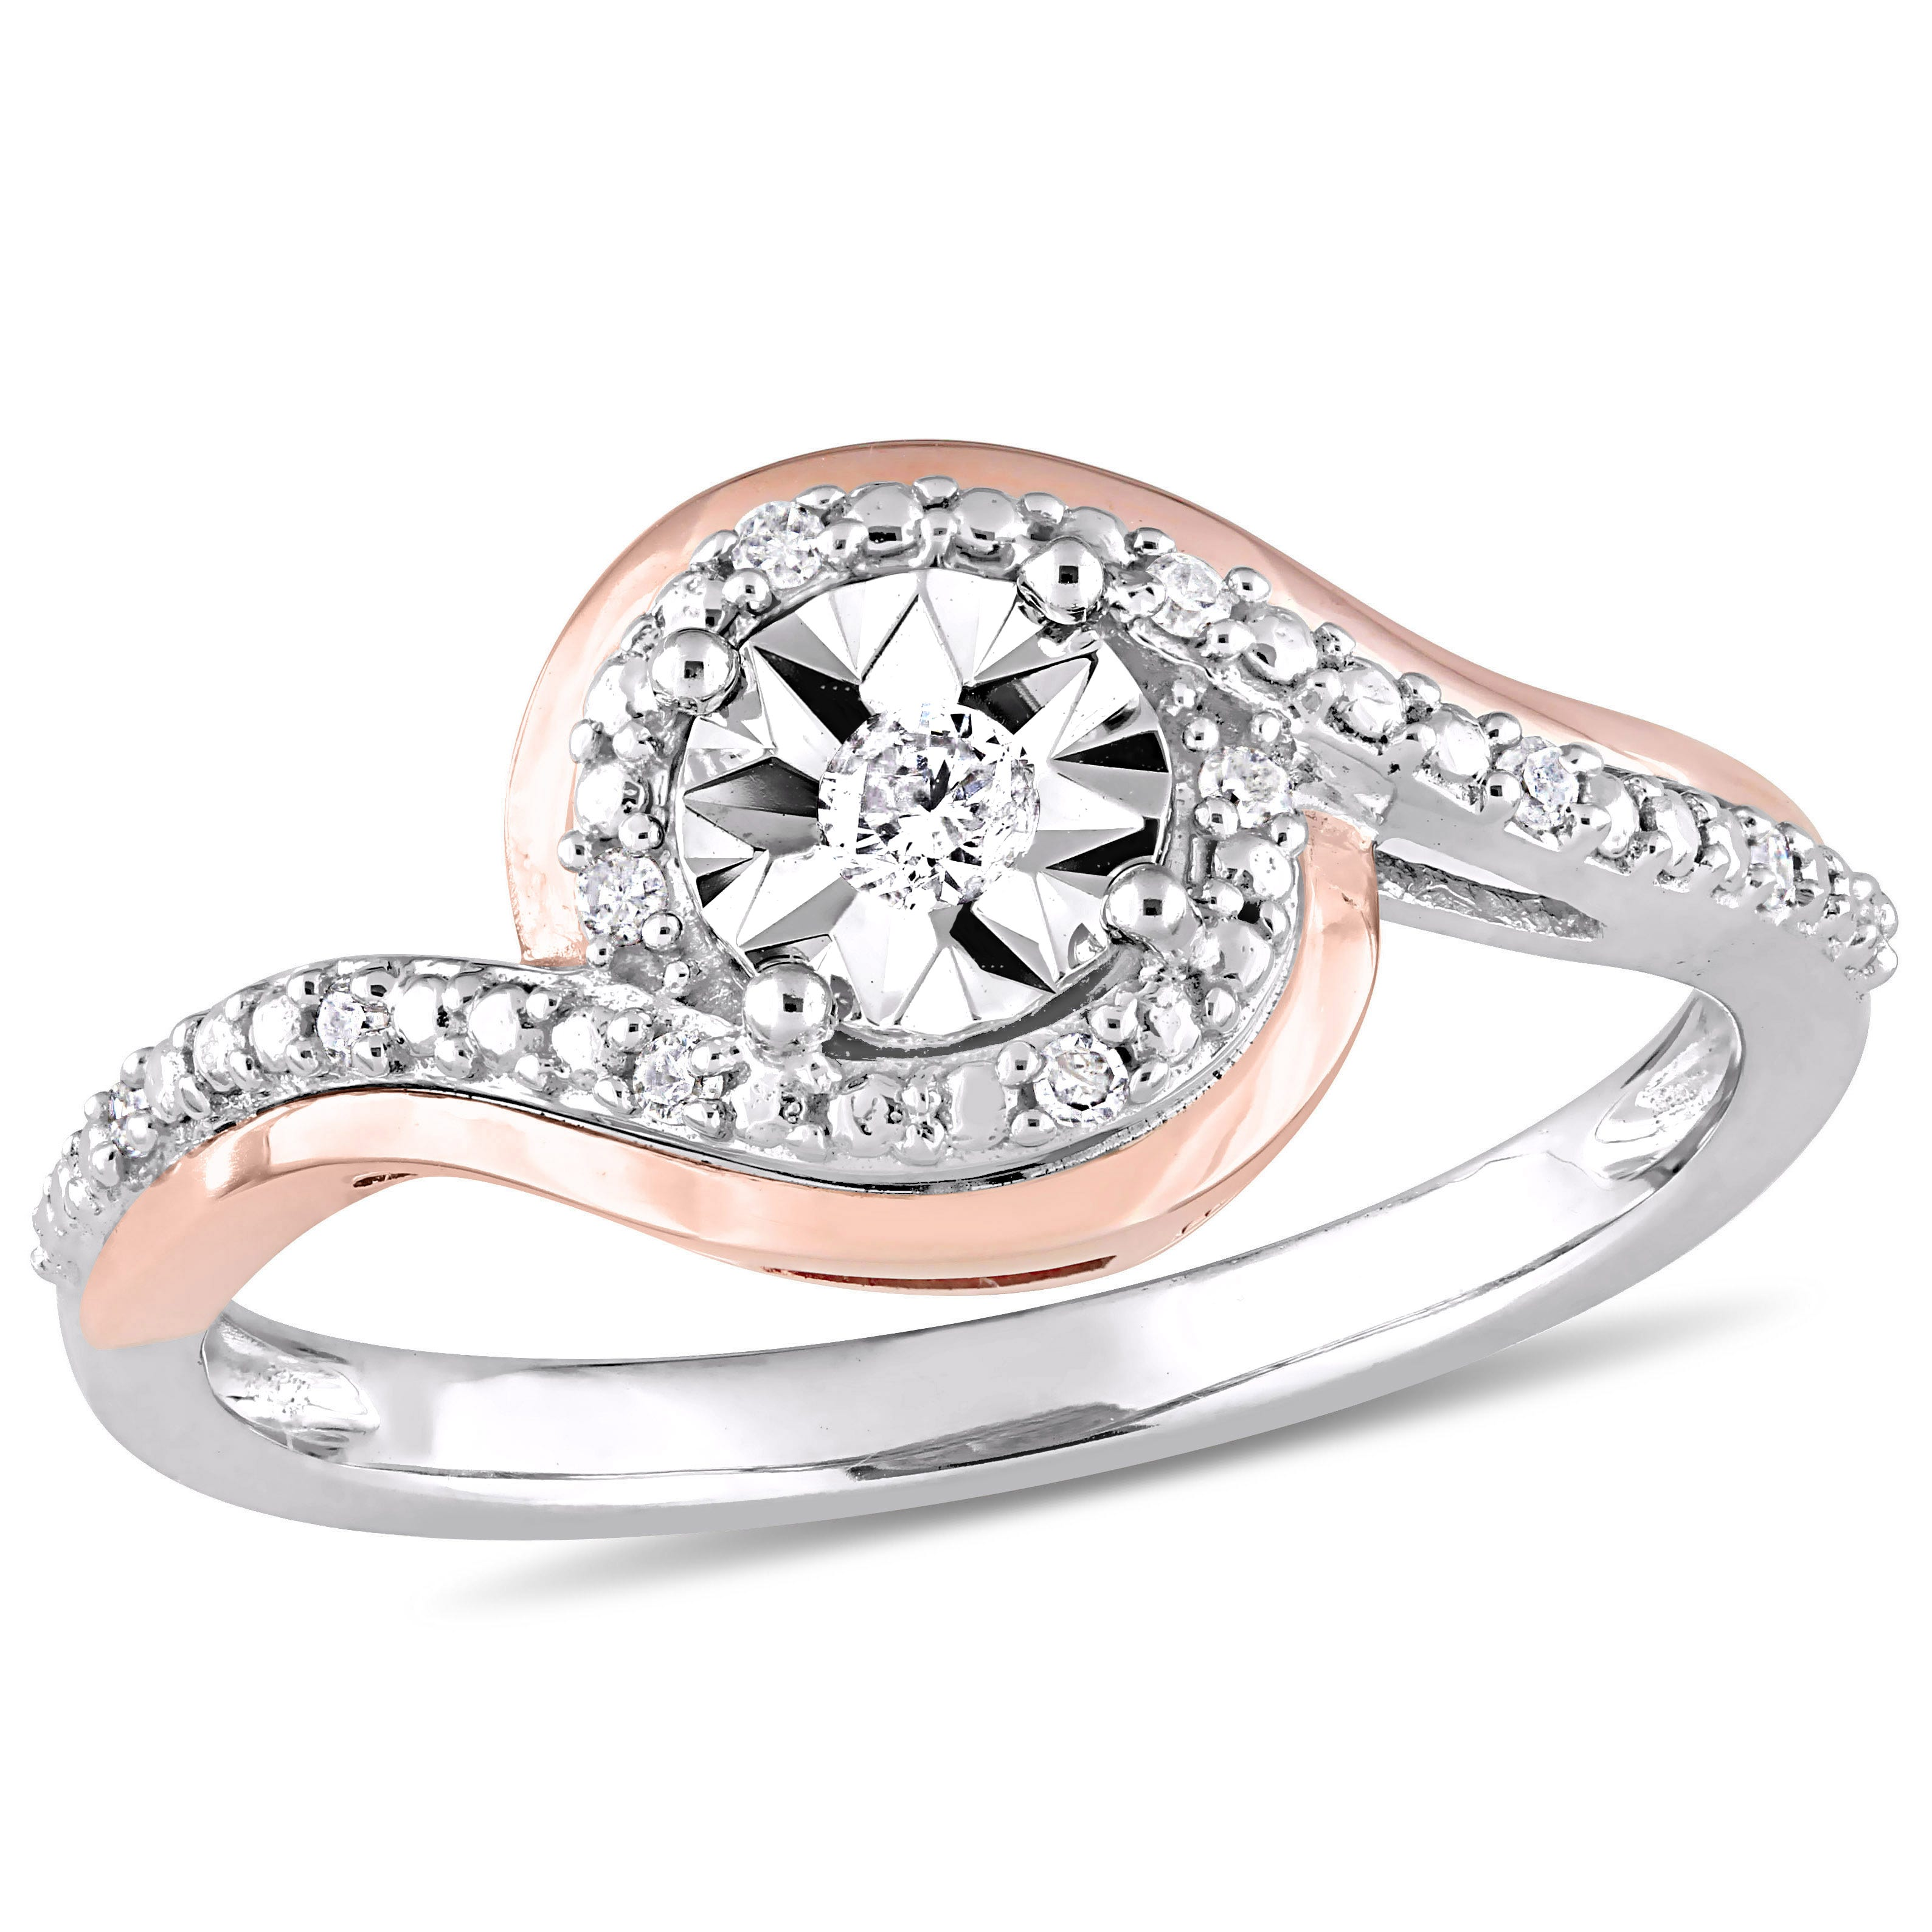 Round Cut Diamond Promise Ring 1/10ctw. in 10k White and Rose Gold